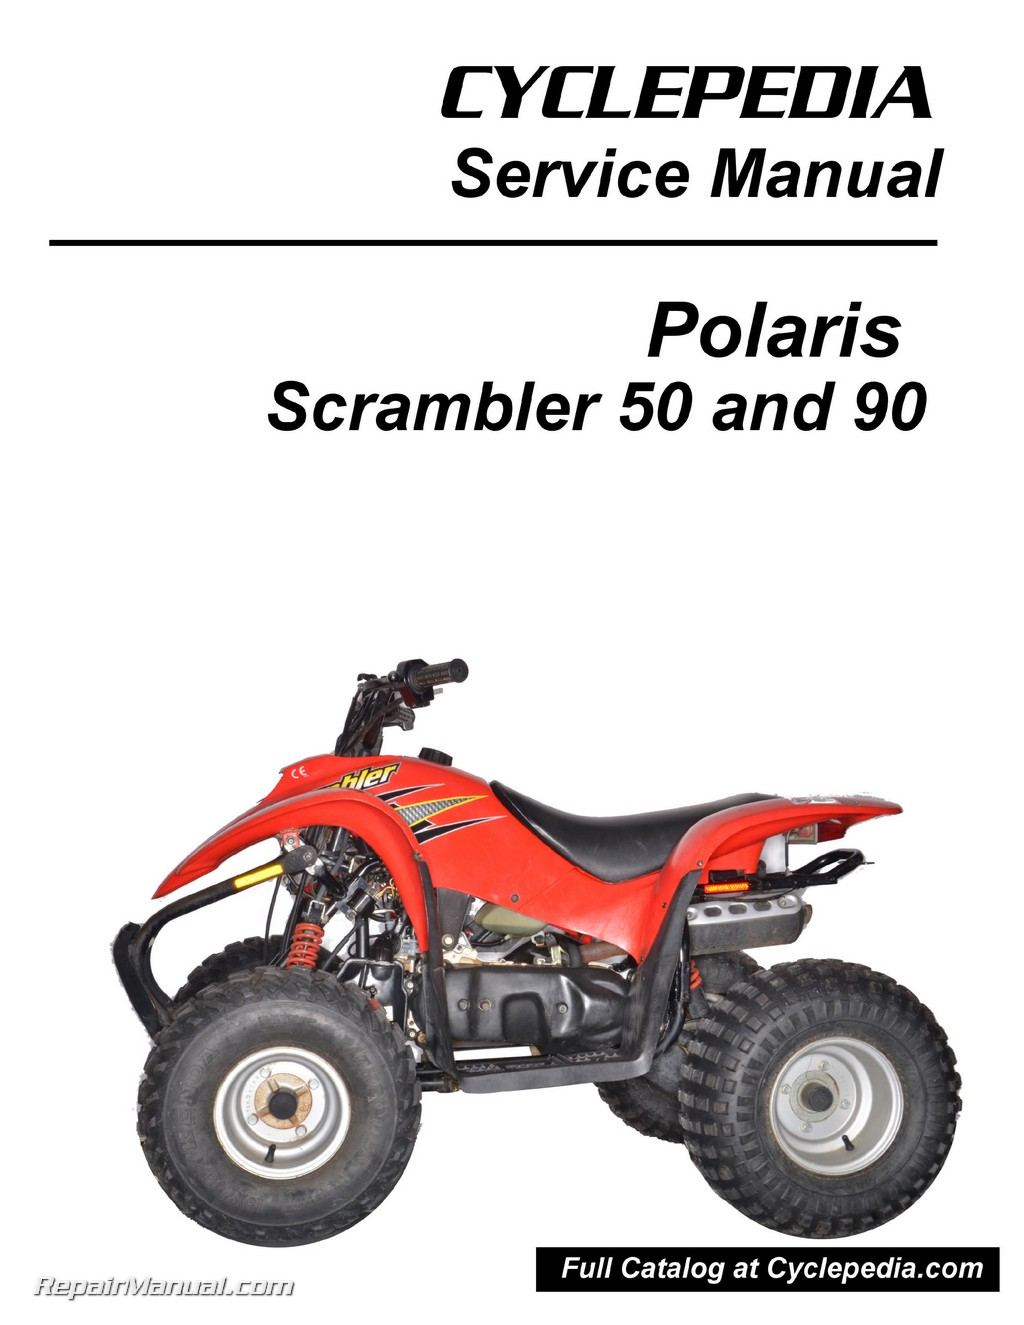 polaris 90 wiring diagram 2001 bmw x5 4 50cc 90cc scrambler atv print service manual by cyclepedia